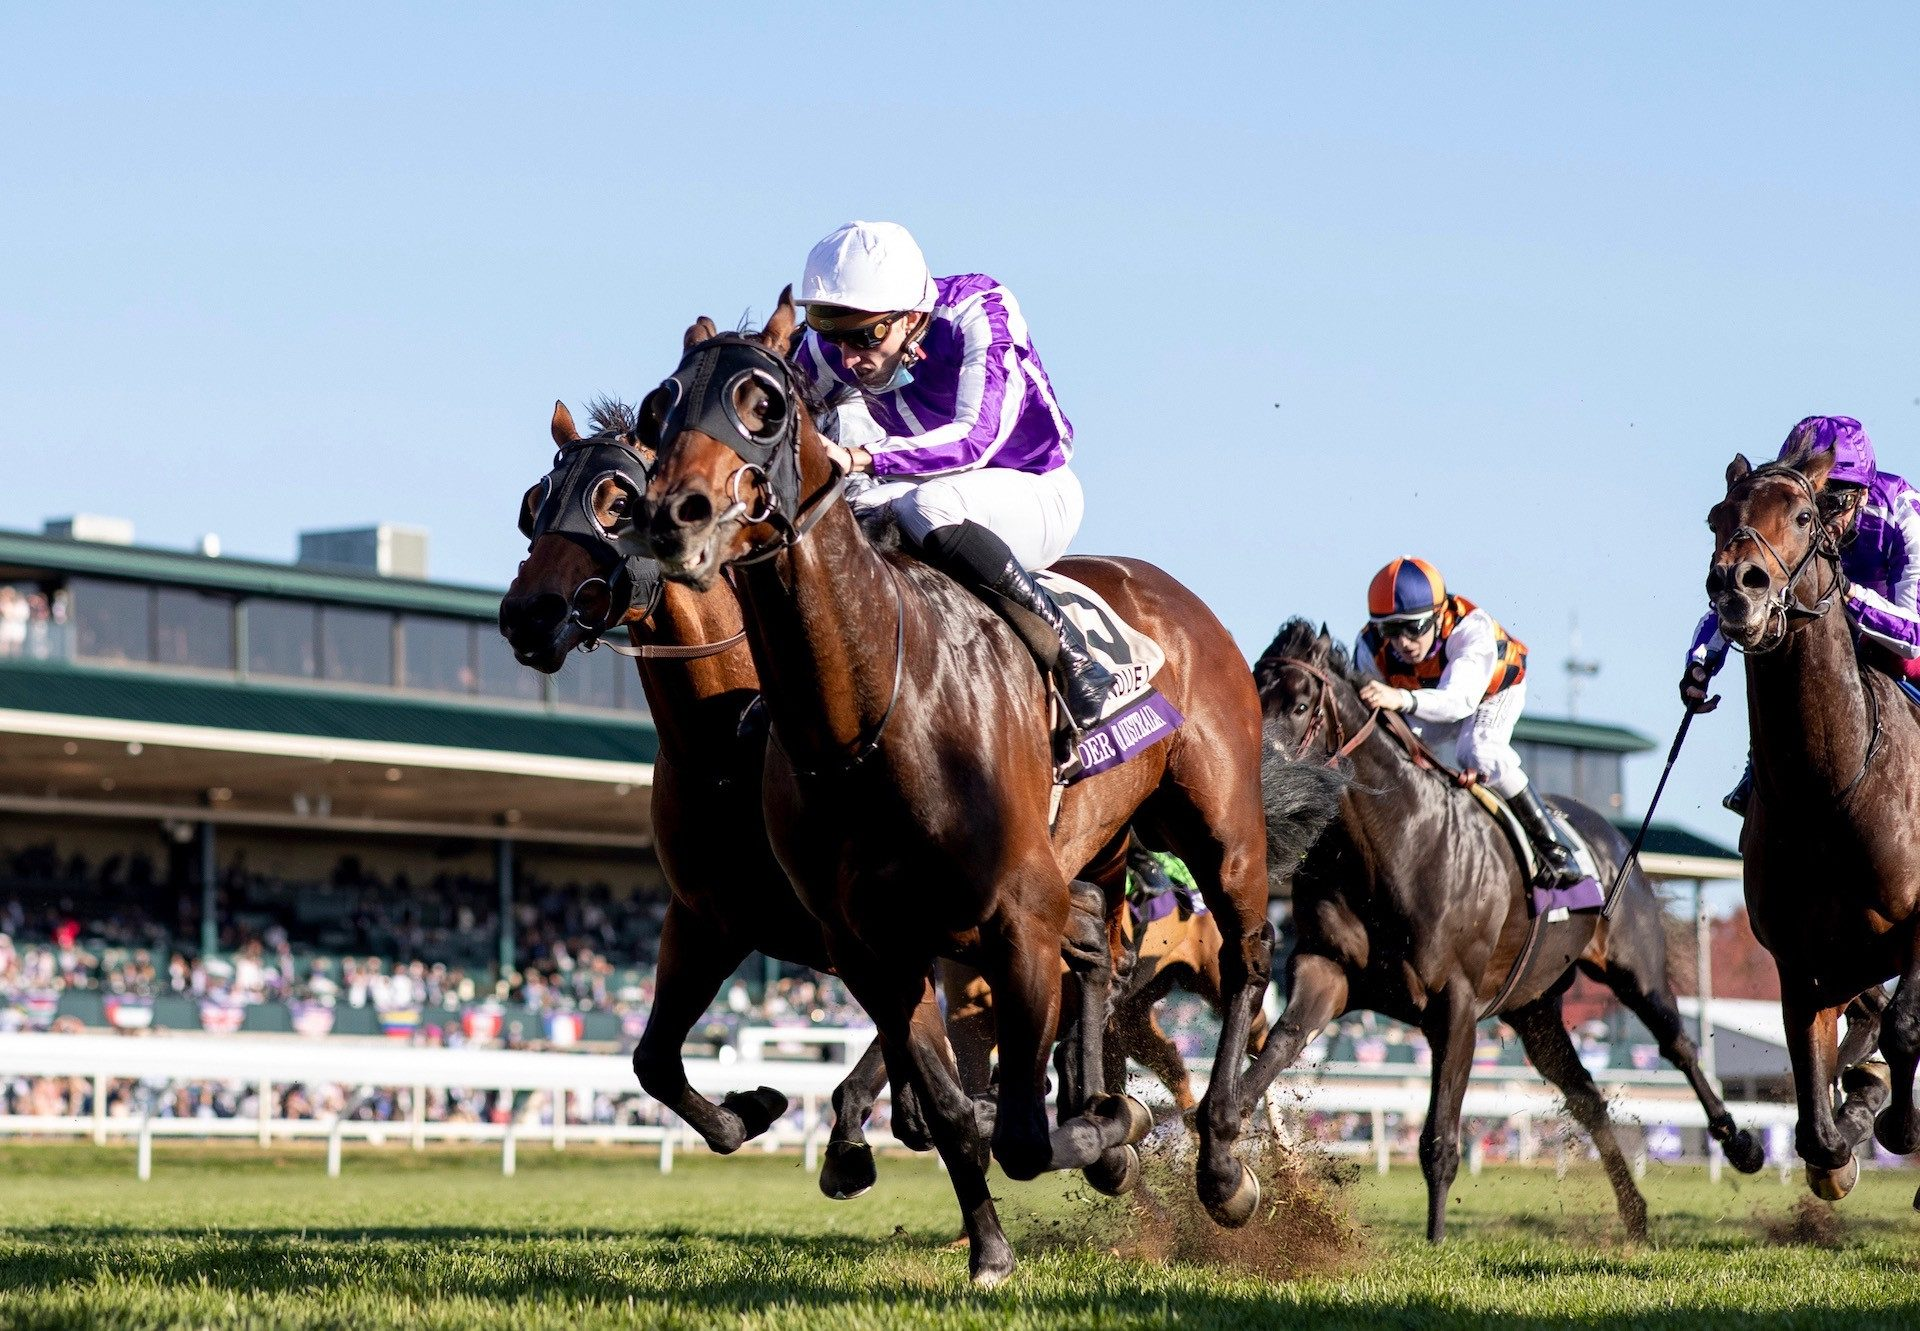 Order Of Australia (Australia) Wins The Gr.1 Breeders' Cup Mile at Keeneland